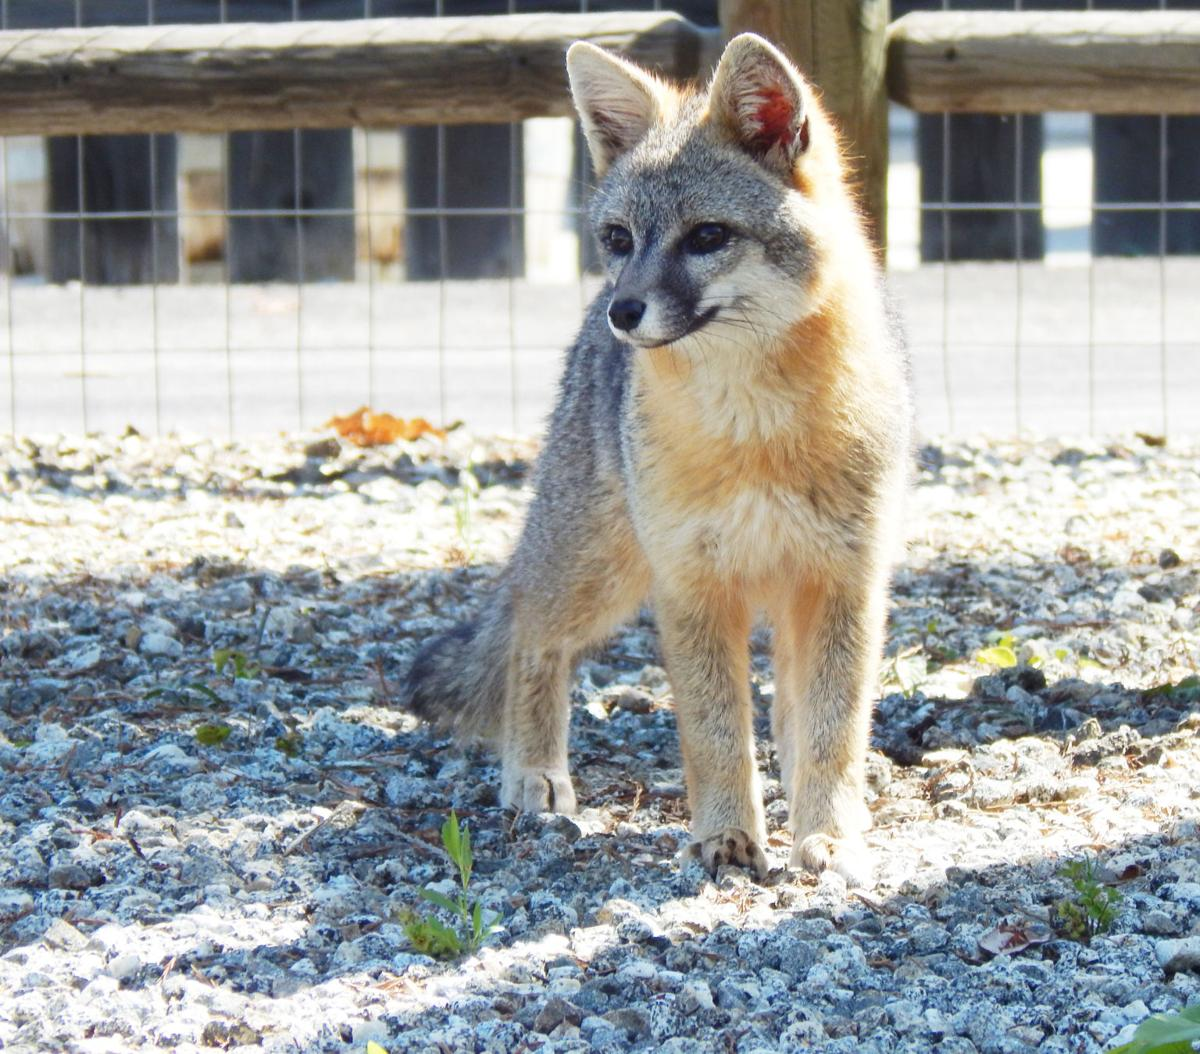 Pen in Hand #1509 - The Fox and the Cat 2.JPG